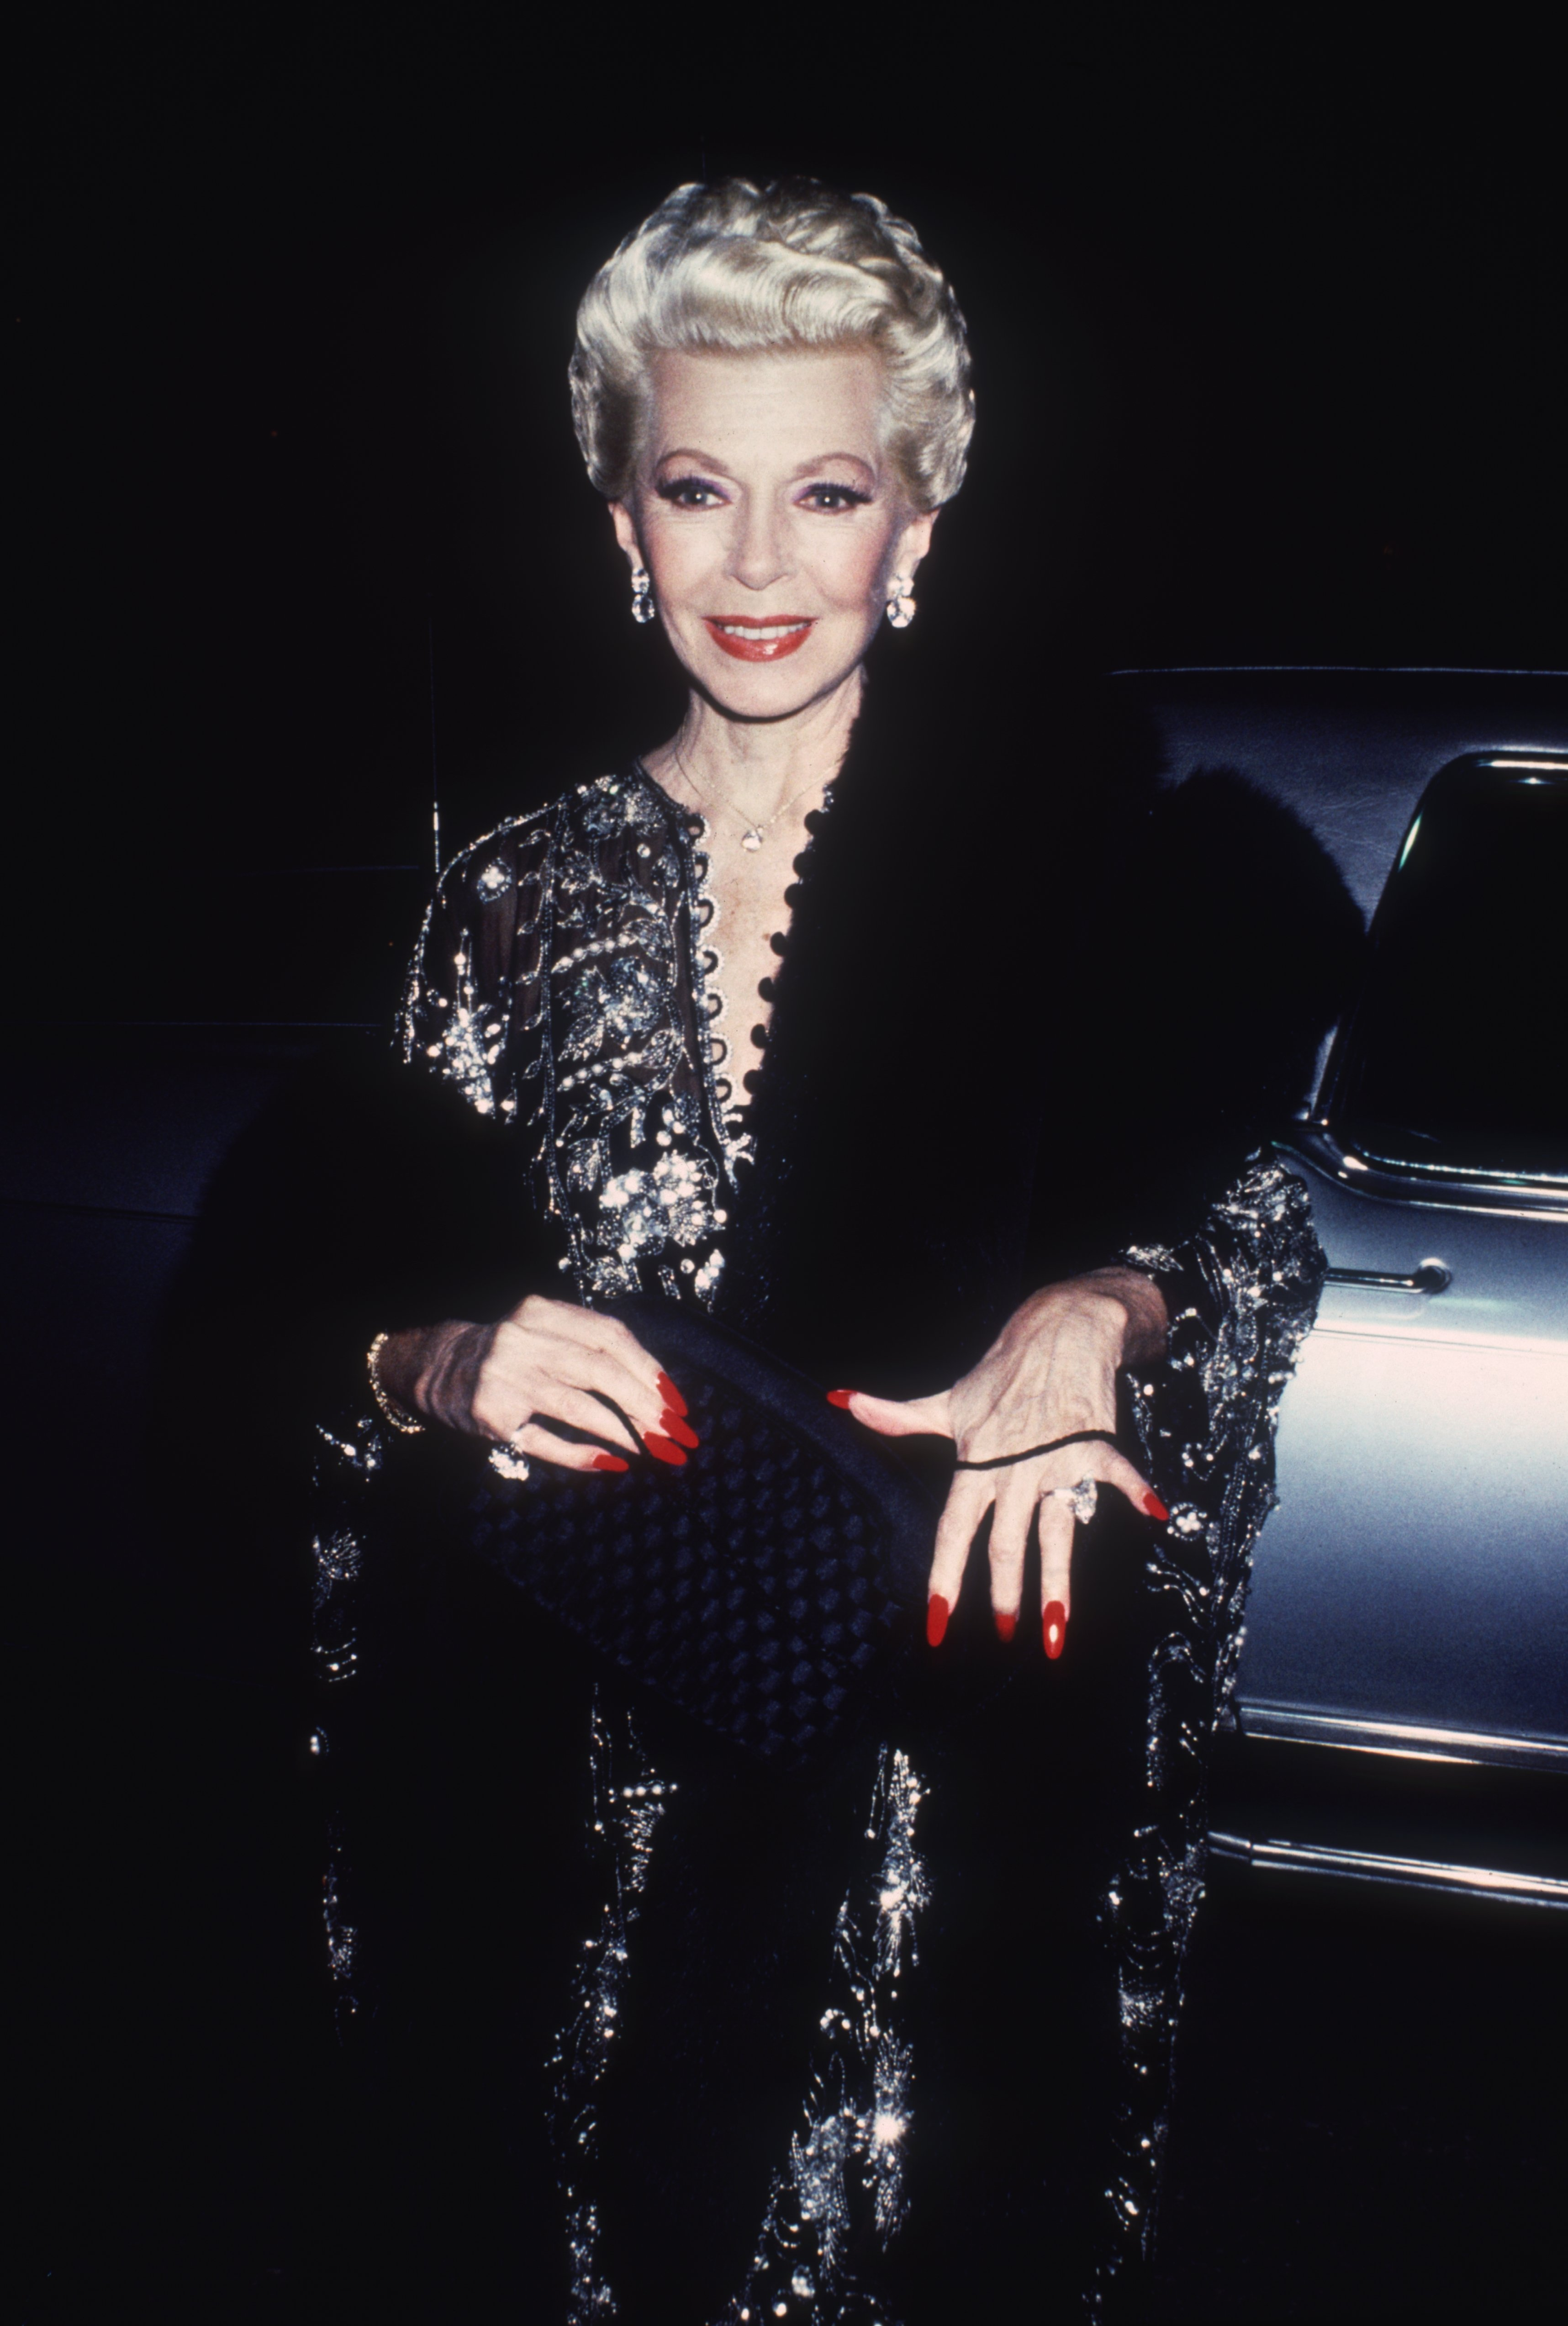 18th December 1984: American actor Lana Turner (1921 - 1995) with platinum blonde hair and red lips and nails, smiles while arriving for a party for the TV show, 'The Love Boat' aboard the Princess Cruise Line's ship 'Royal Princess,' Los Angeles, California. | Source: Getty Images